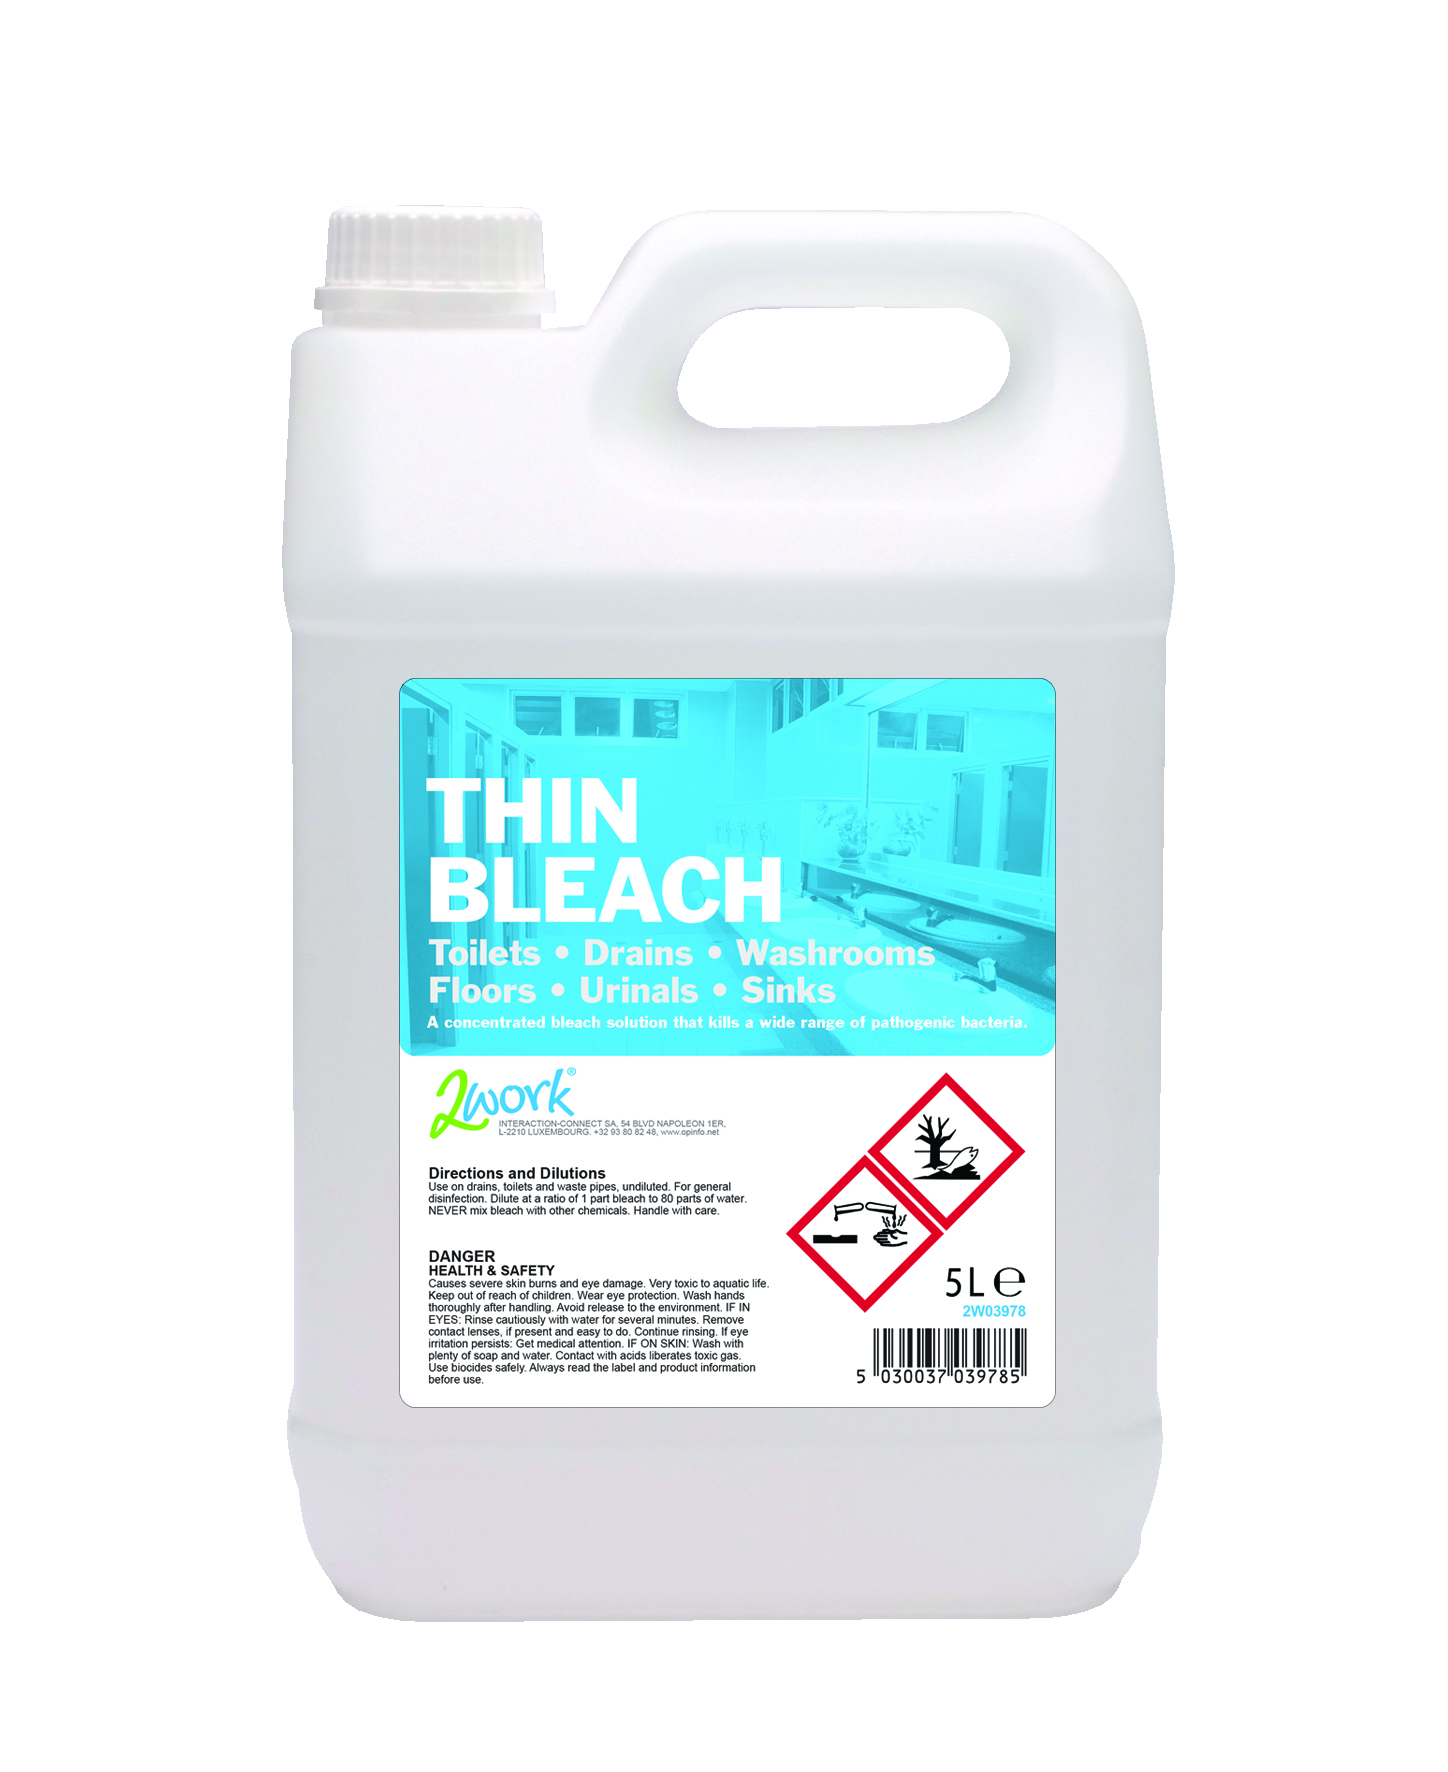 Do different dilutions of disinfectants affect the development of - 2work Thin Bleach 5lt